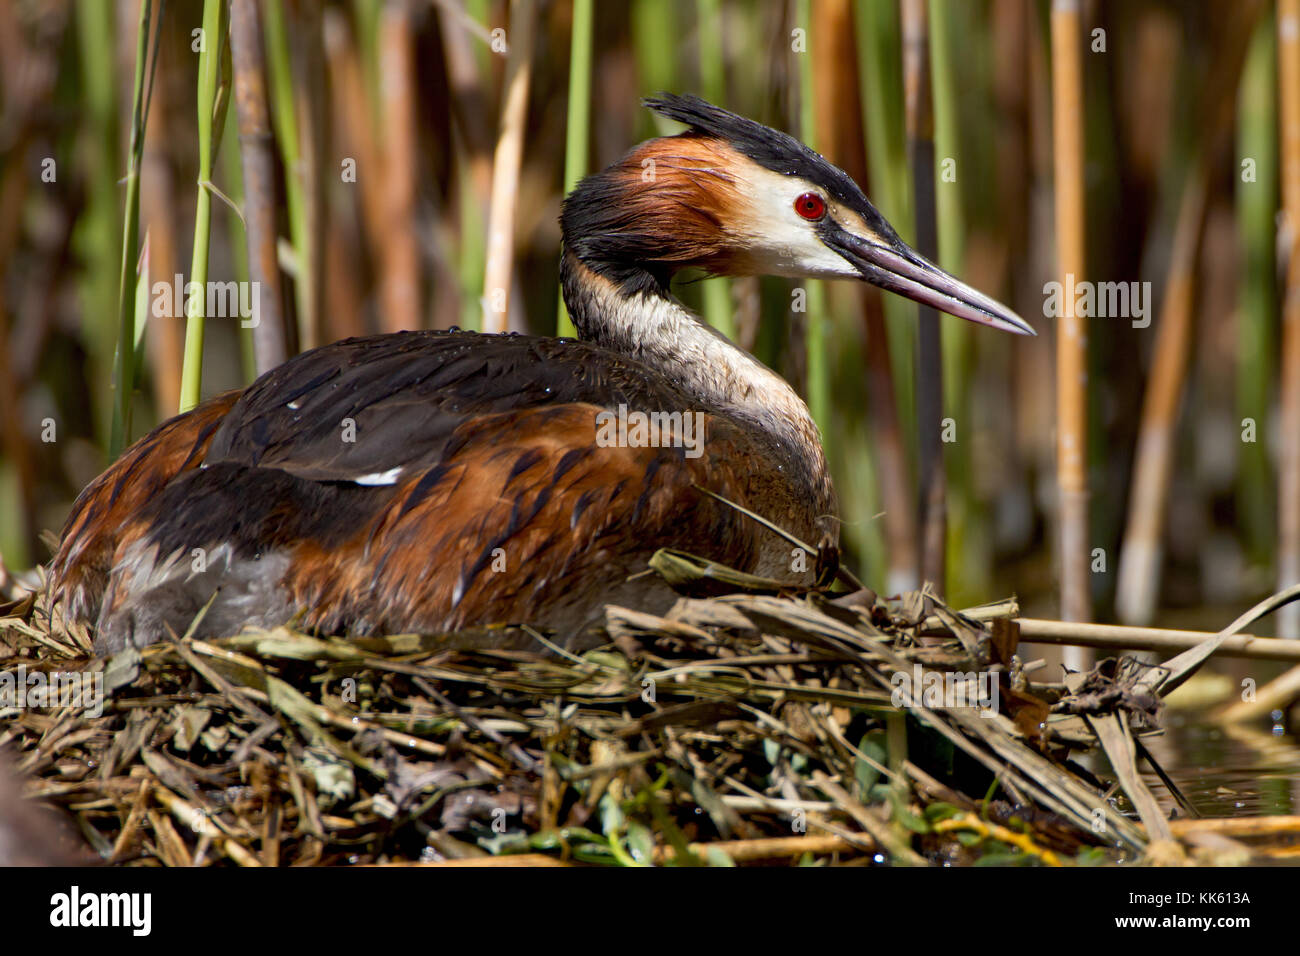 Bigger creek on the nest - Stock Image